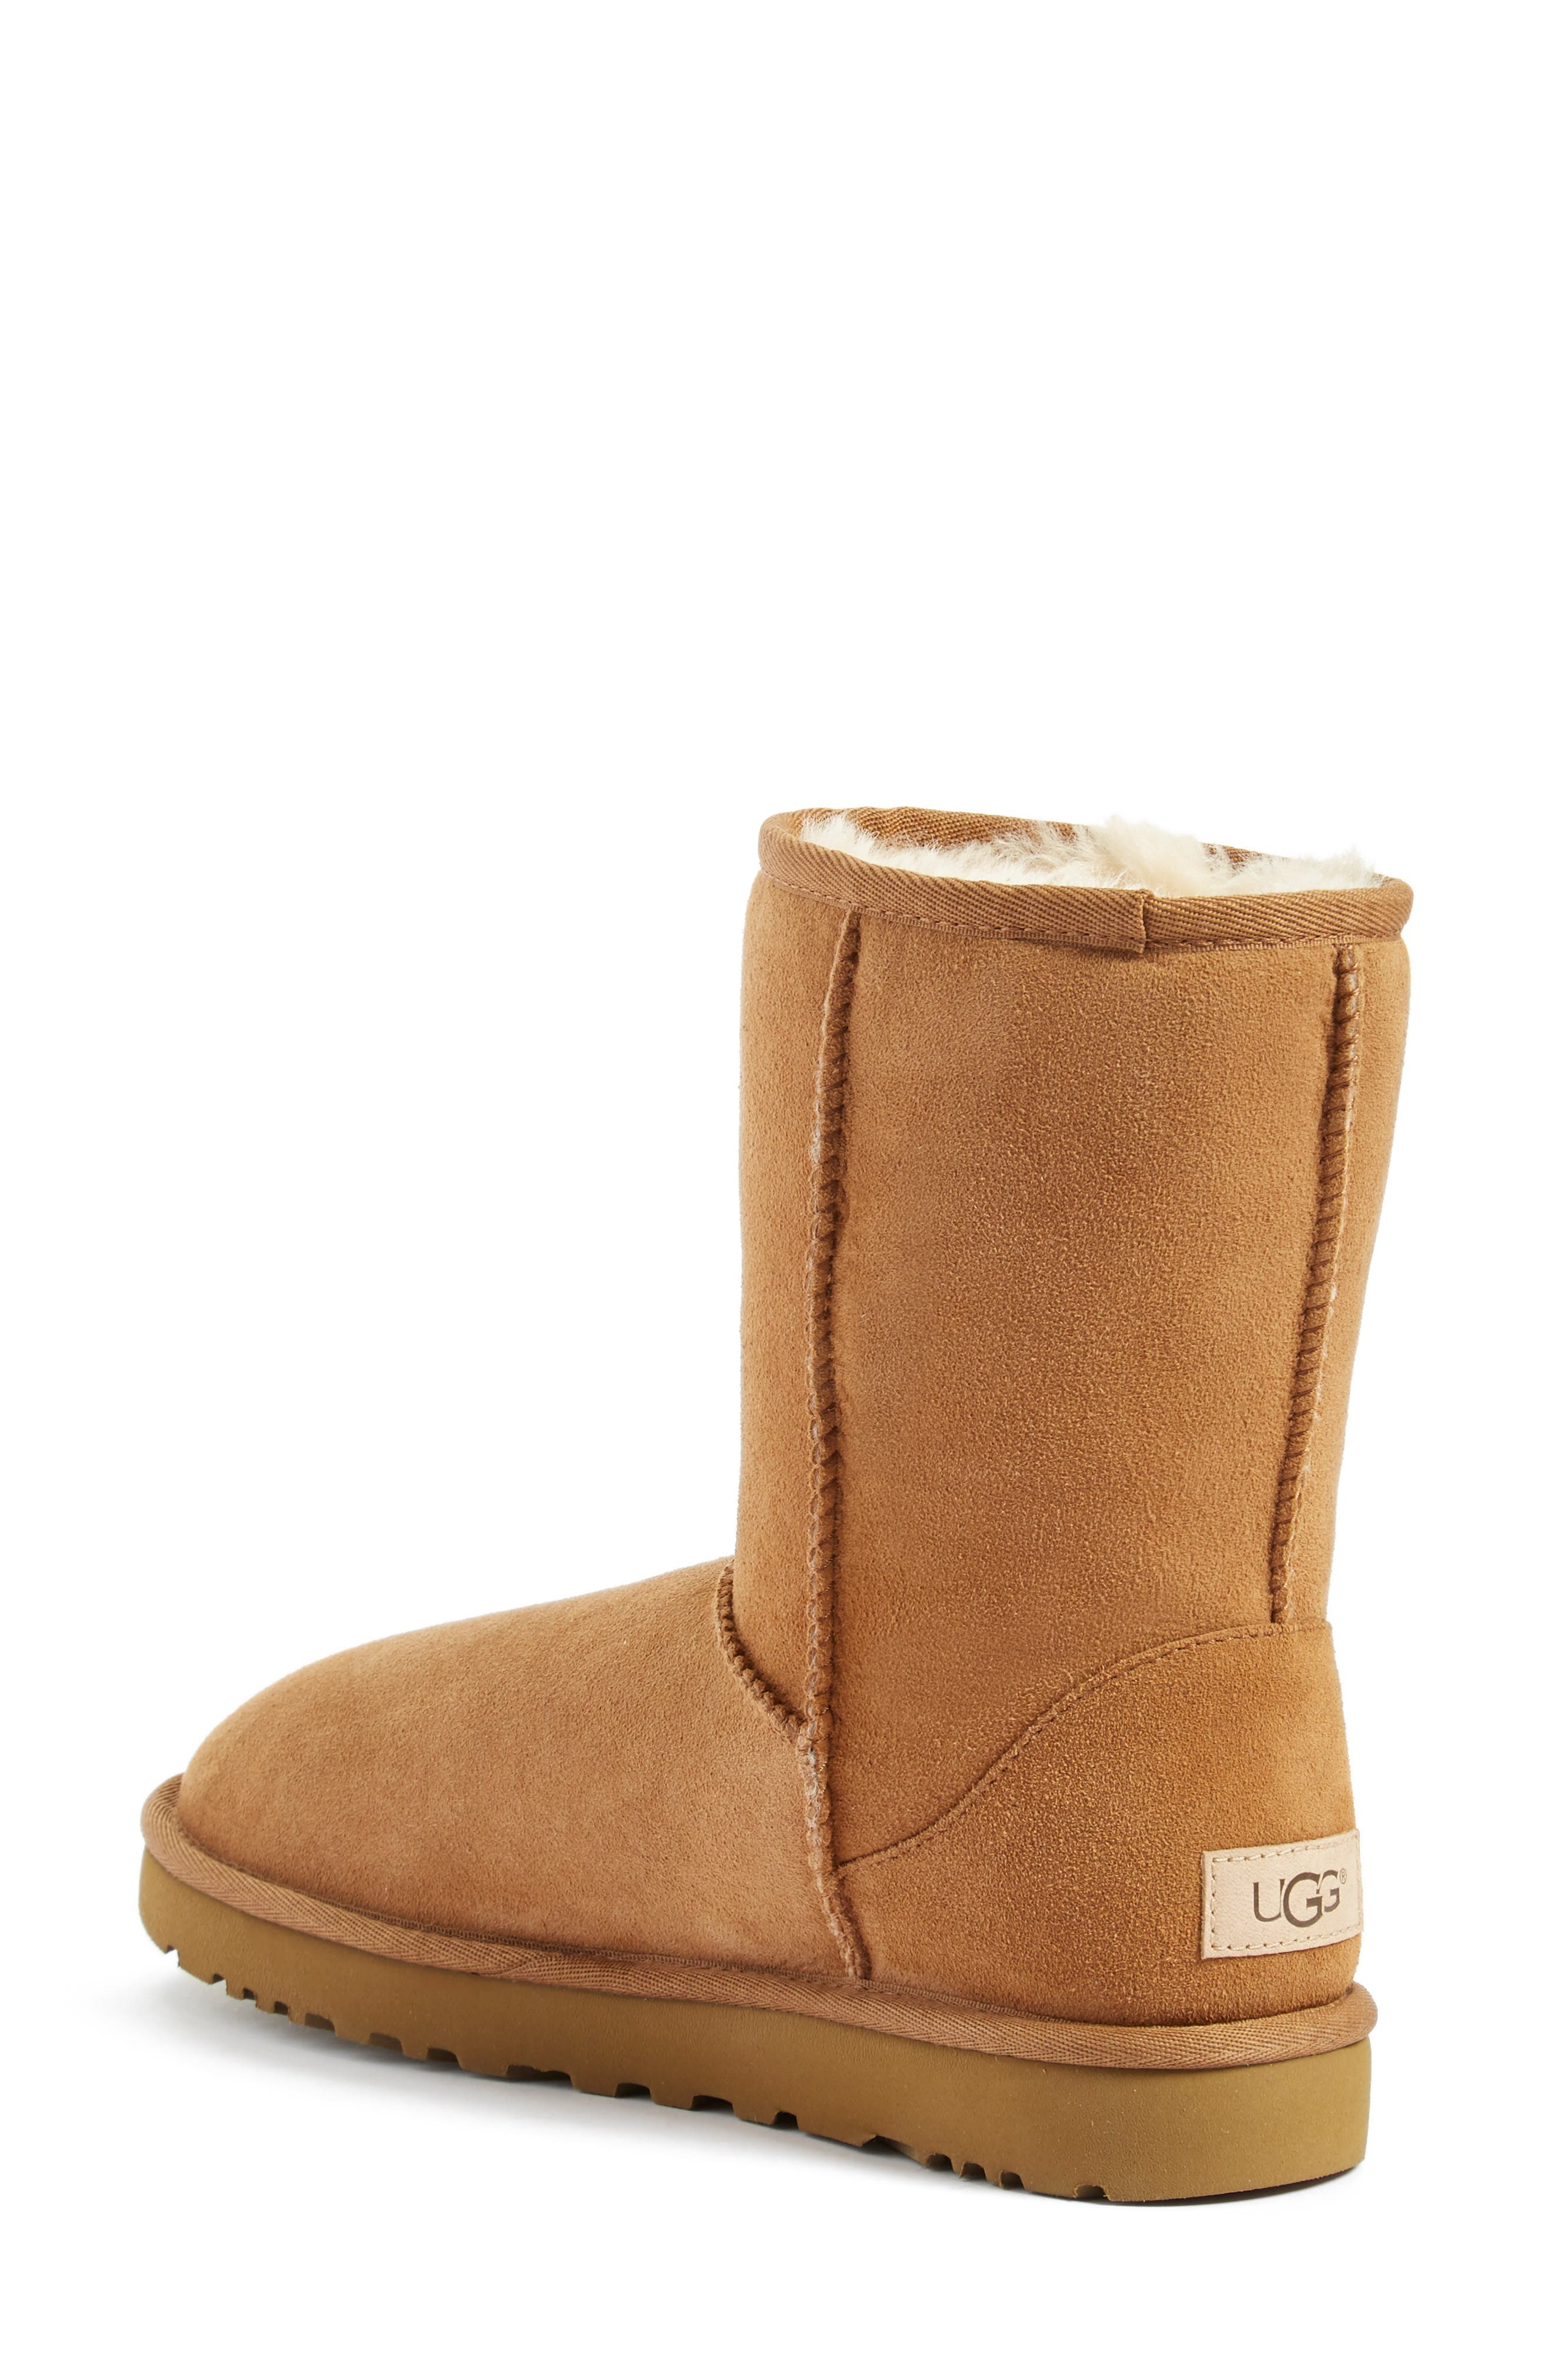 'Classic II' Genuine Shearling Lined Short Boot,                             Alternate thumbnail 2, color,                             CHESTNUT SUEDE